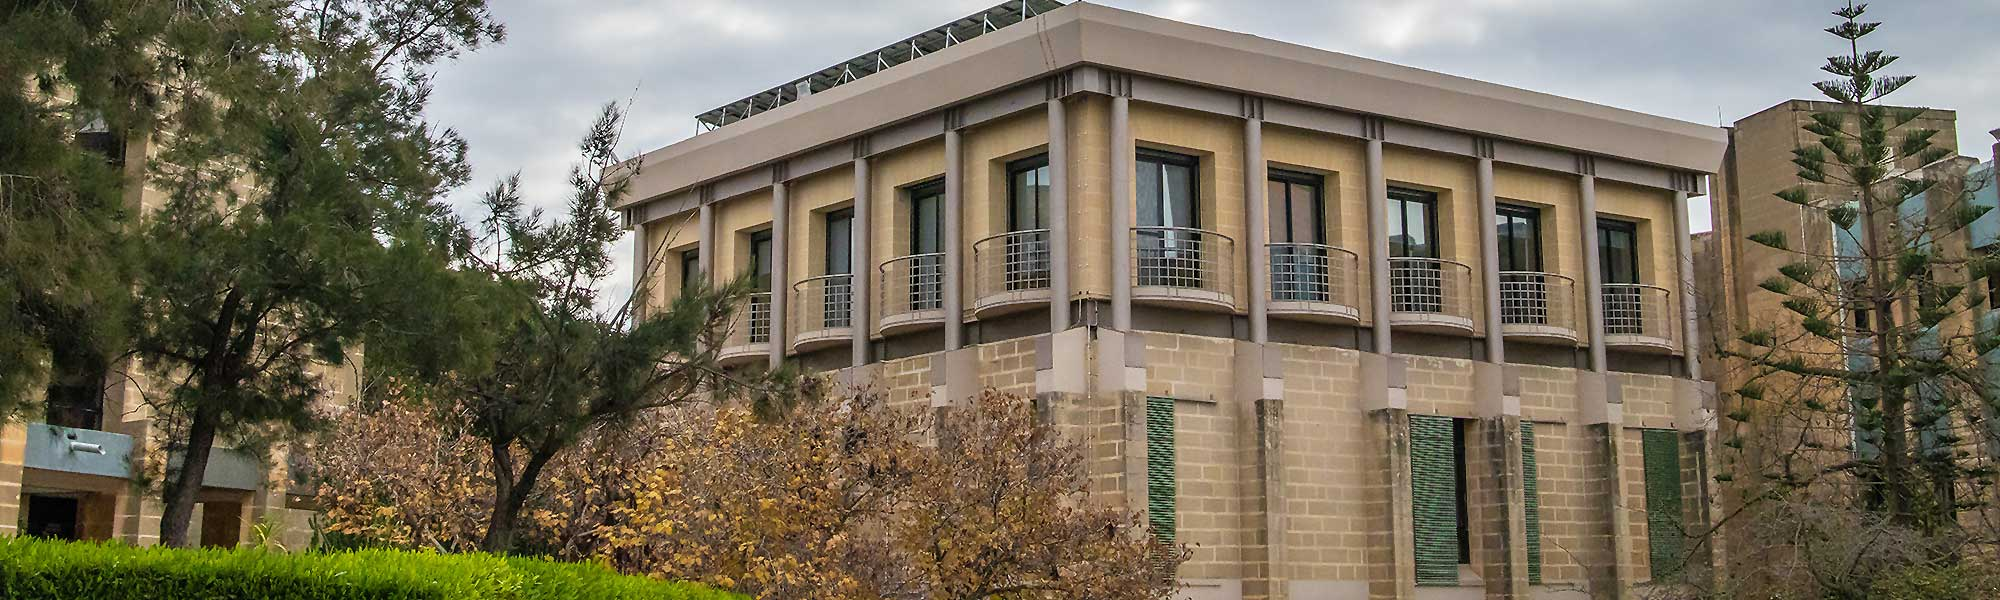 Administration Building, Msida Campus